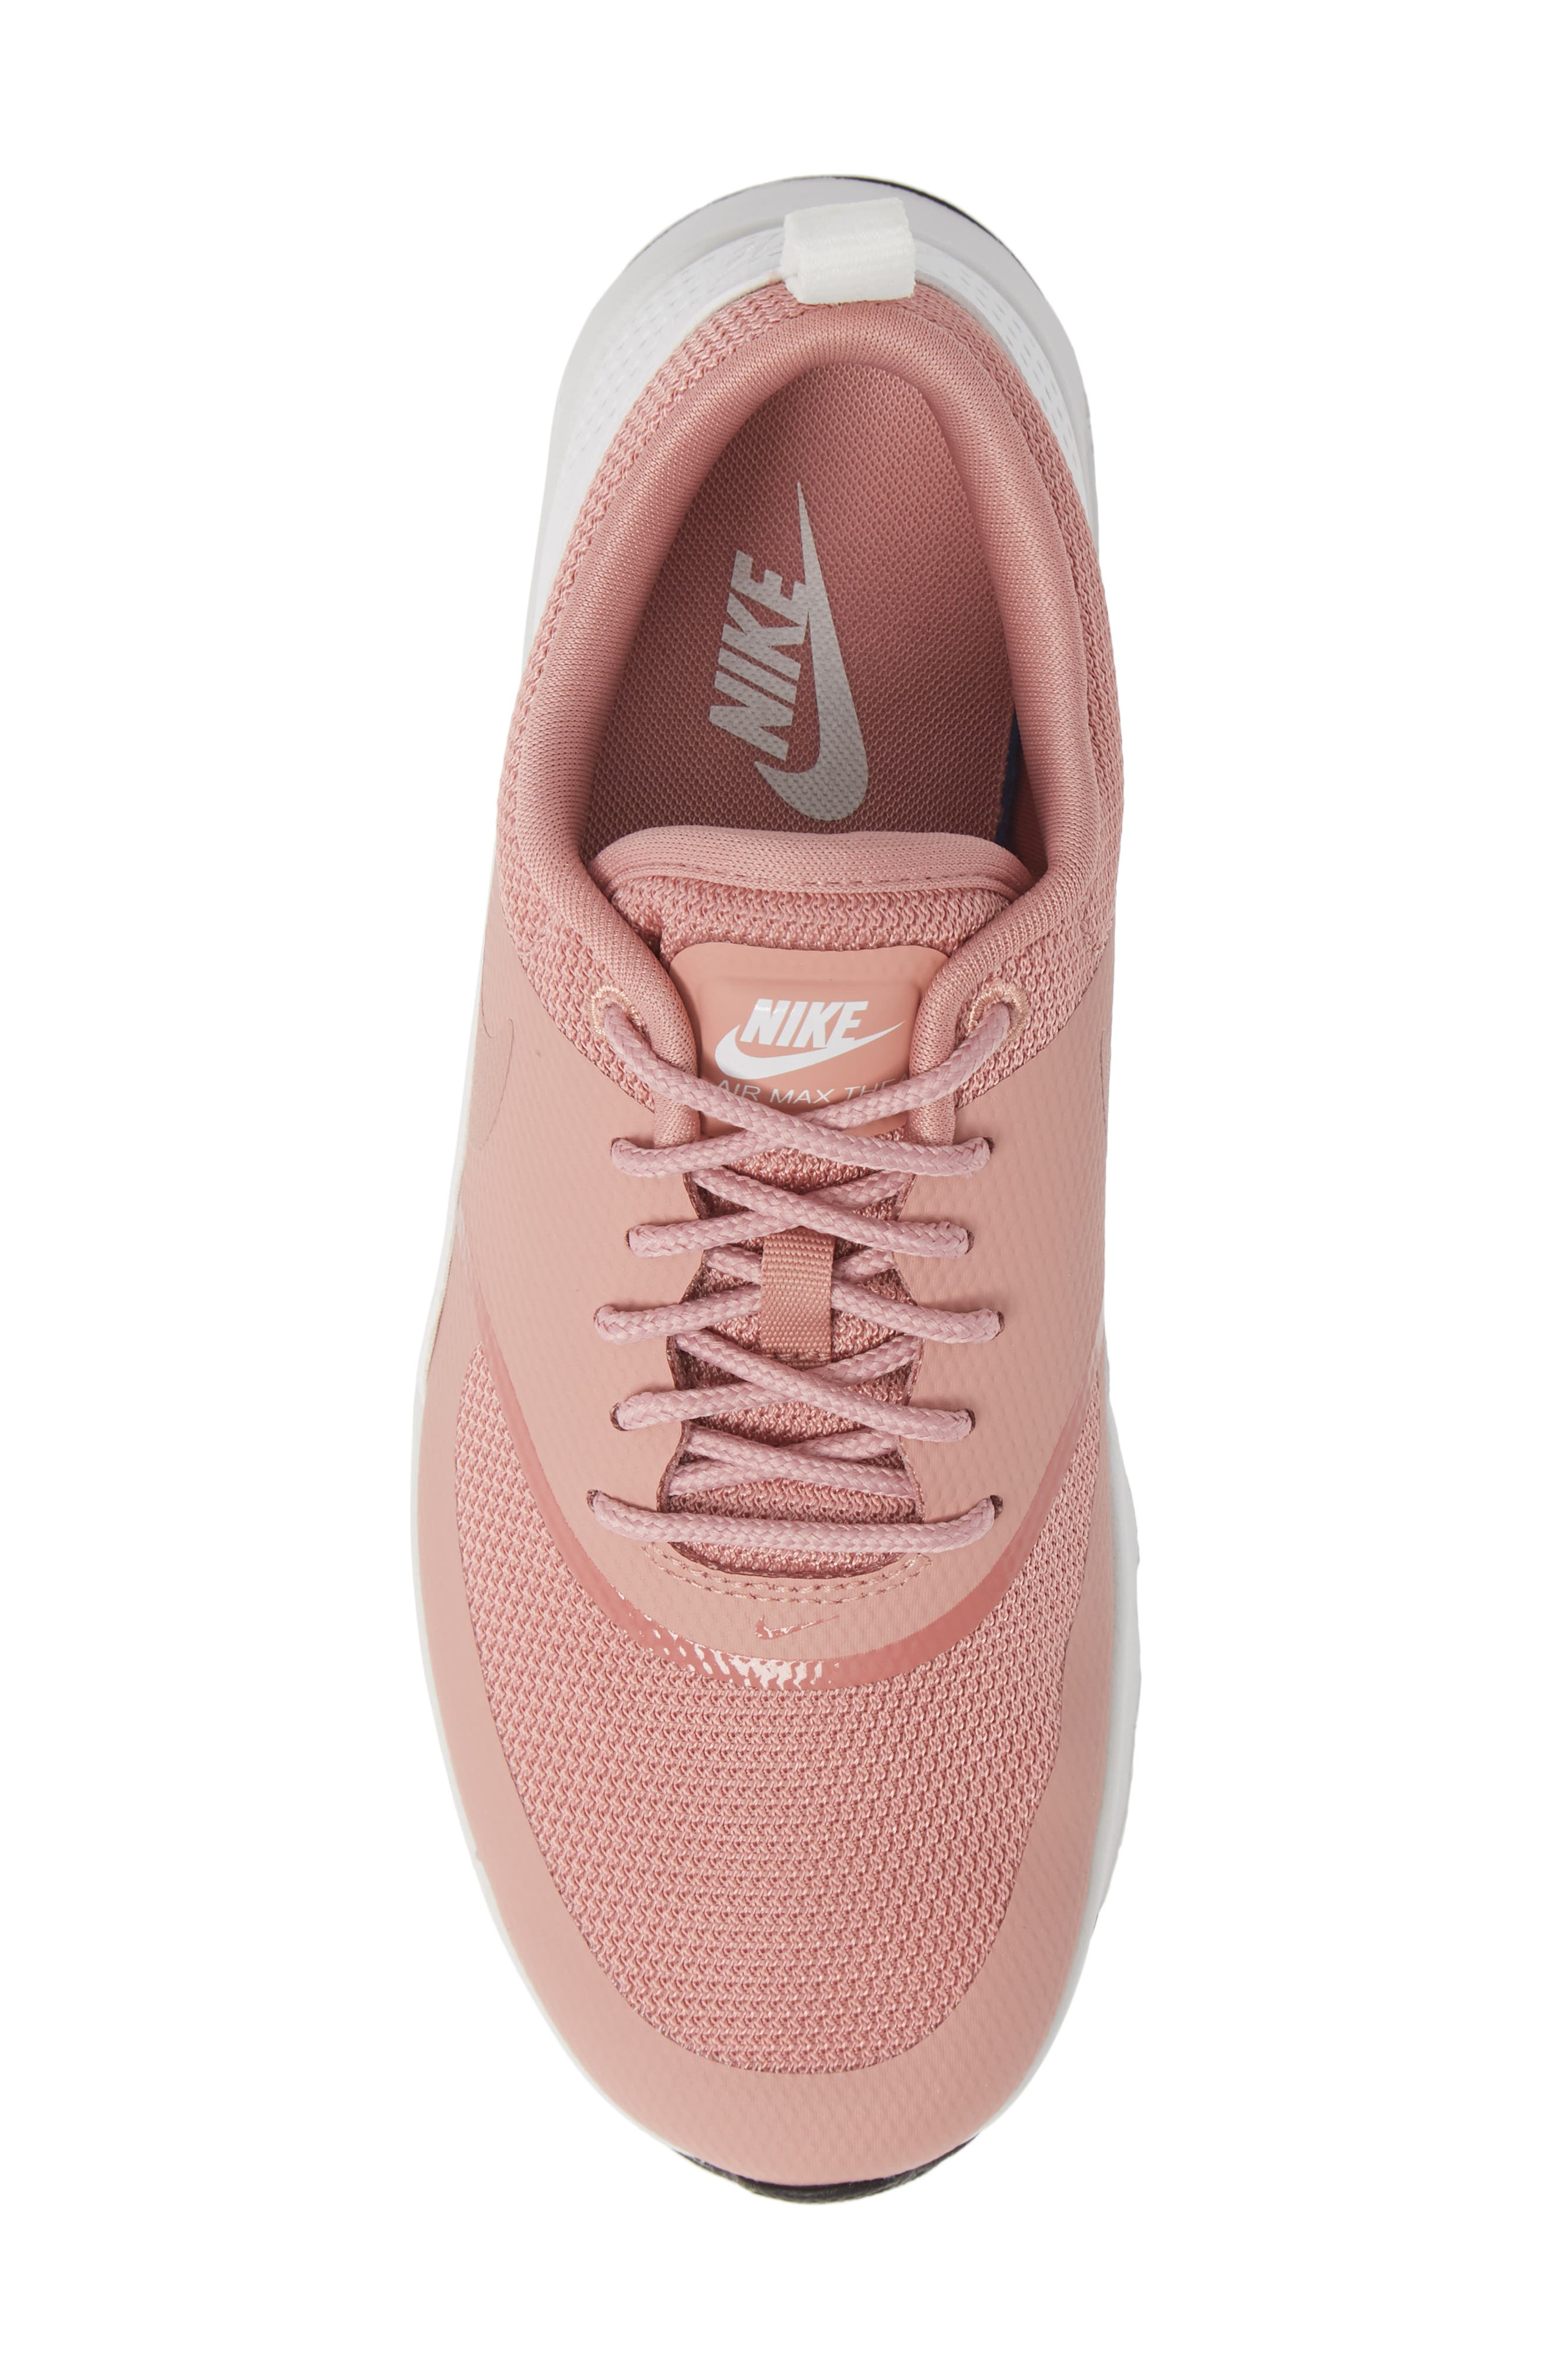 Air Max Thea Sneaker,                             Alternate thumbnail 5, color,                             RUST PINK/ WHITE/ BLACK